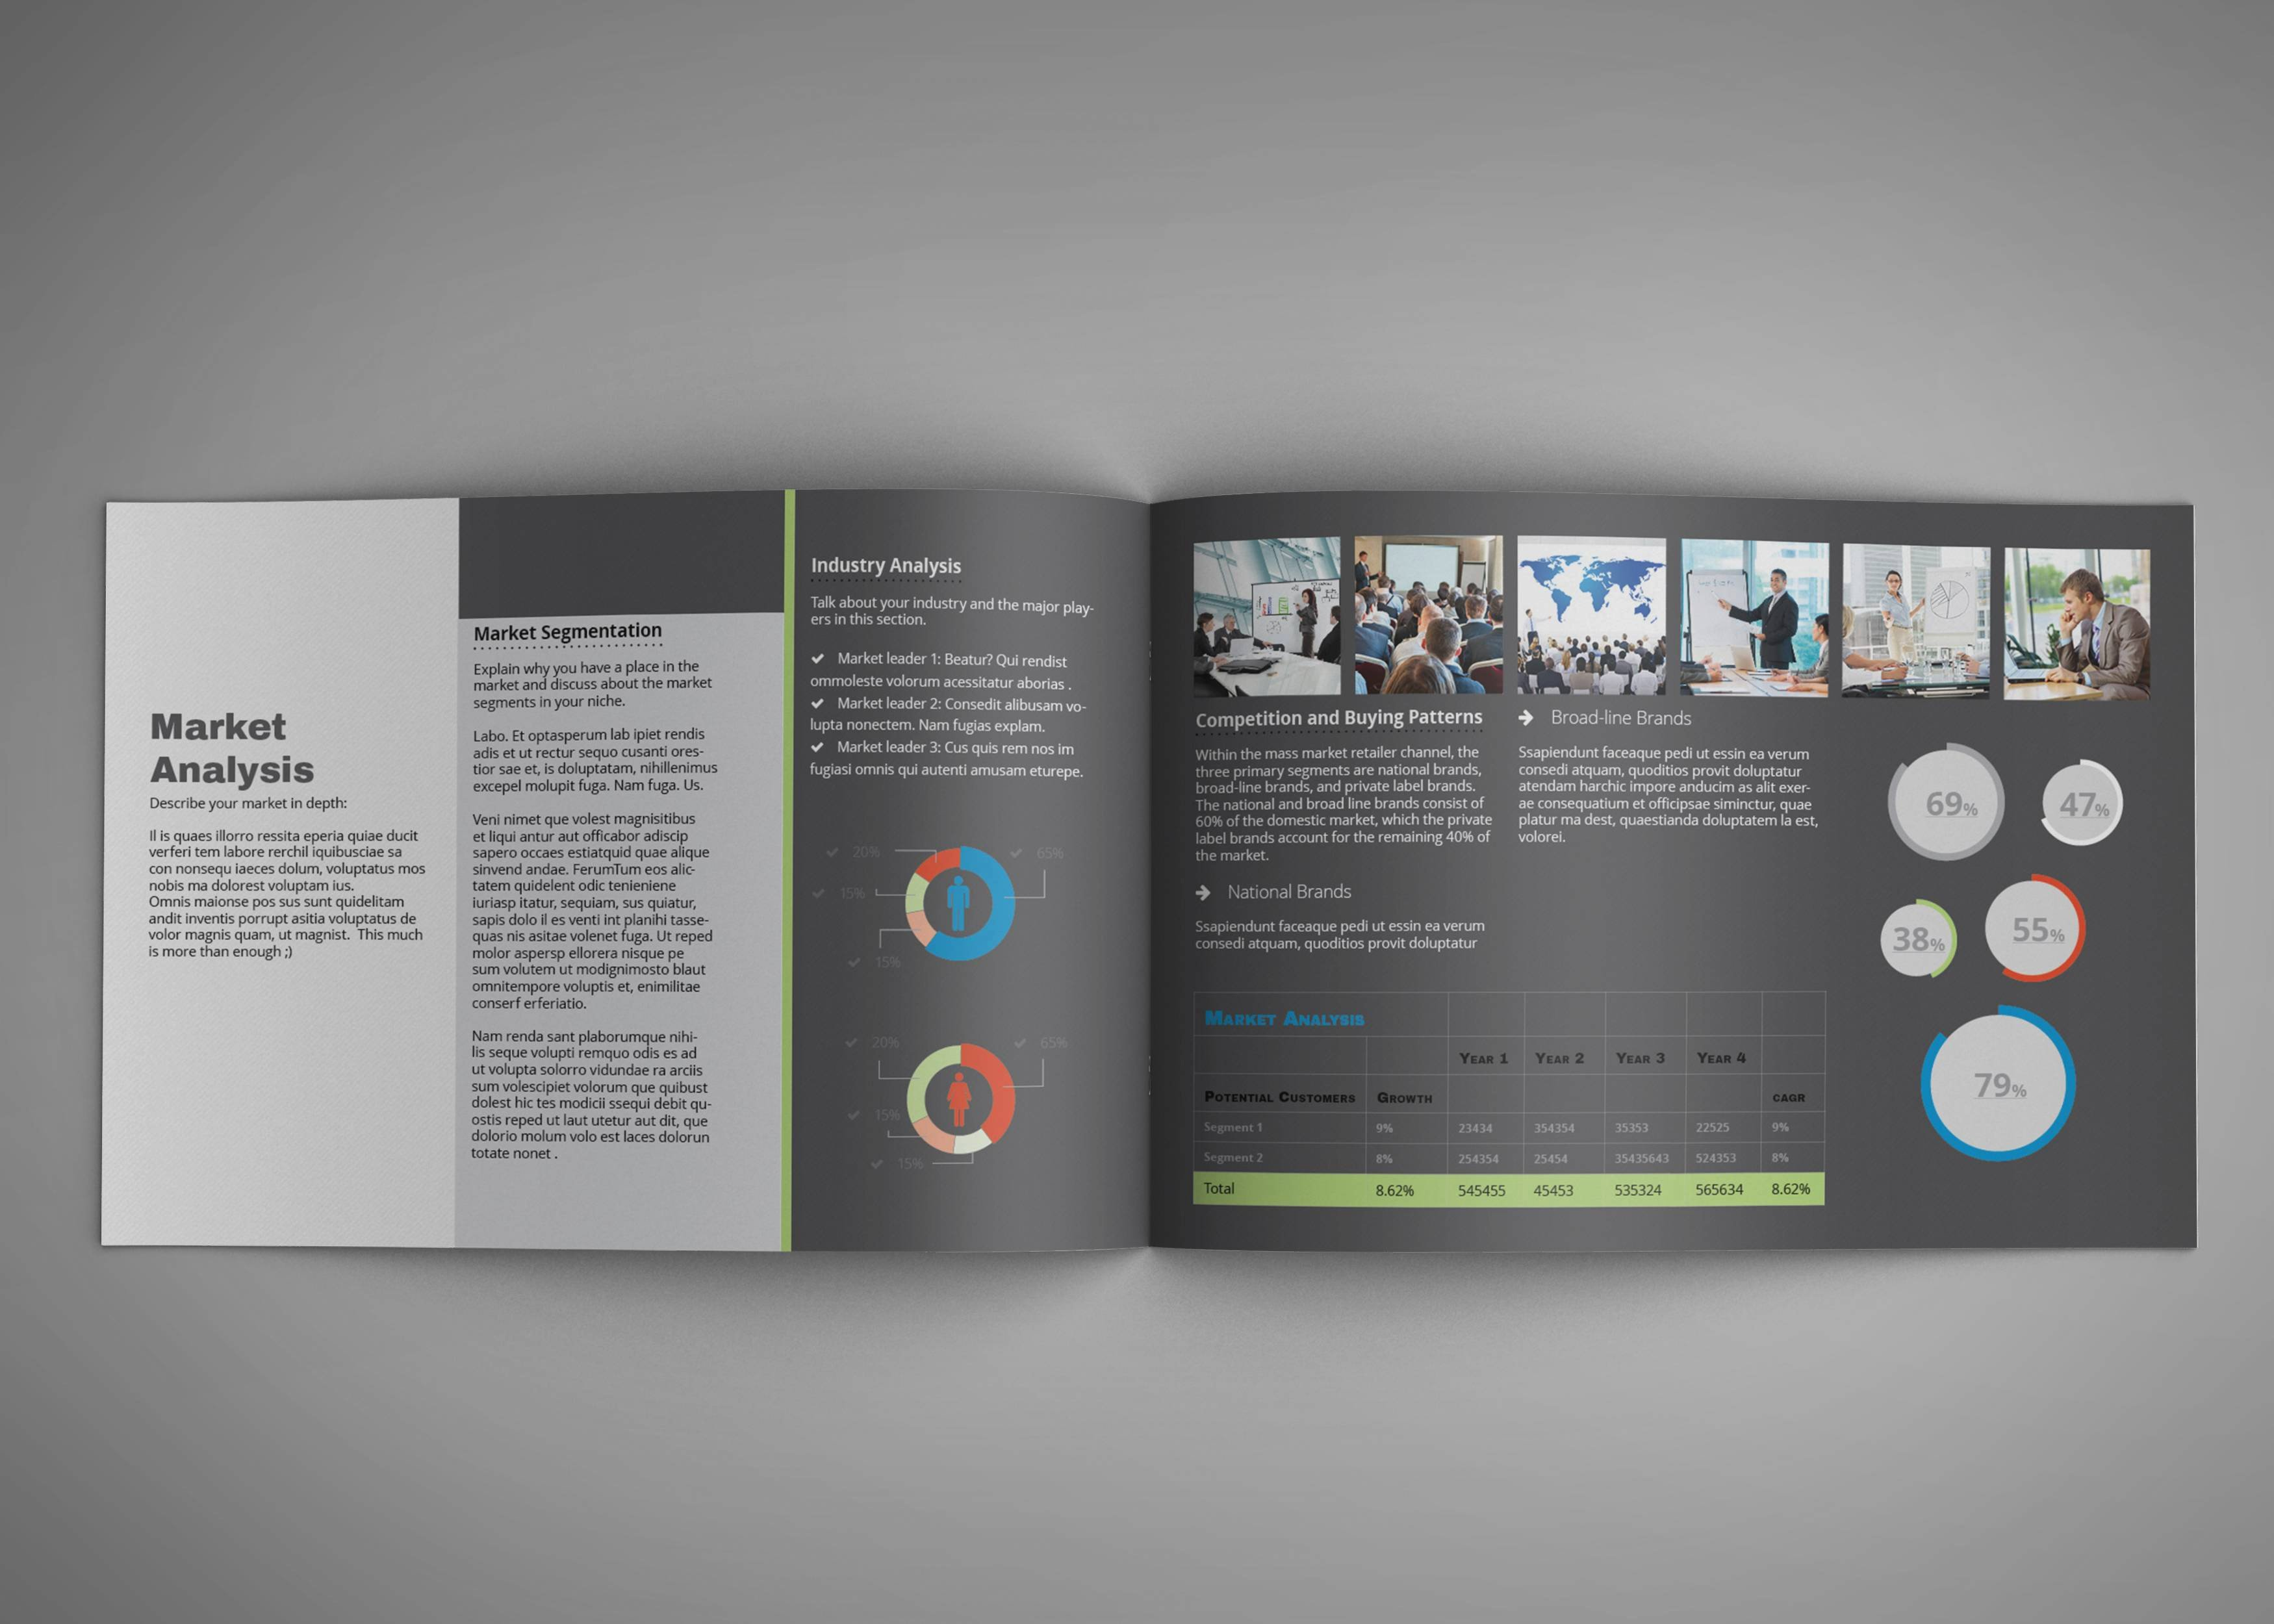 Landscaping Business Plan Template Awesome 20 Nouveau Page De Garde Business Plan Image Lucybug